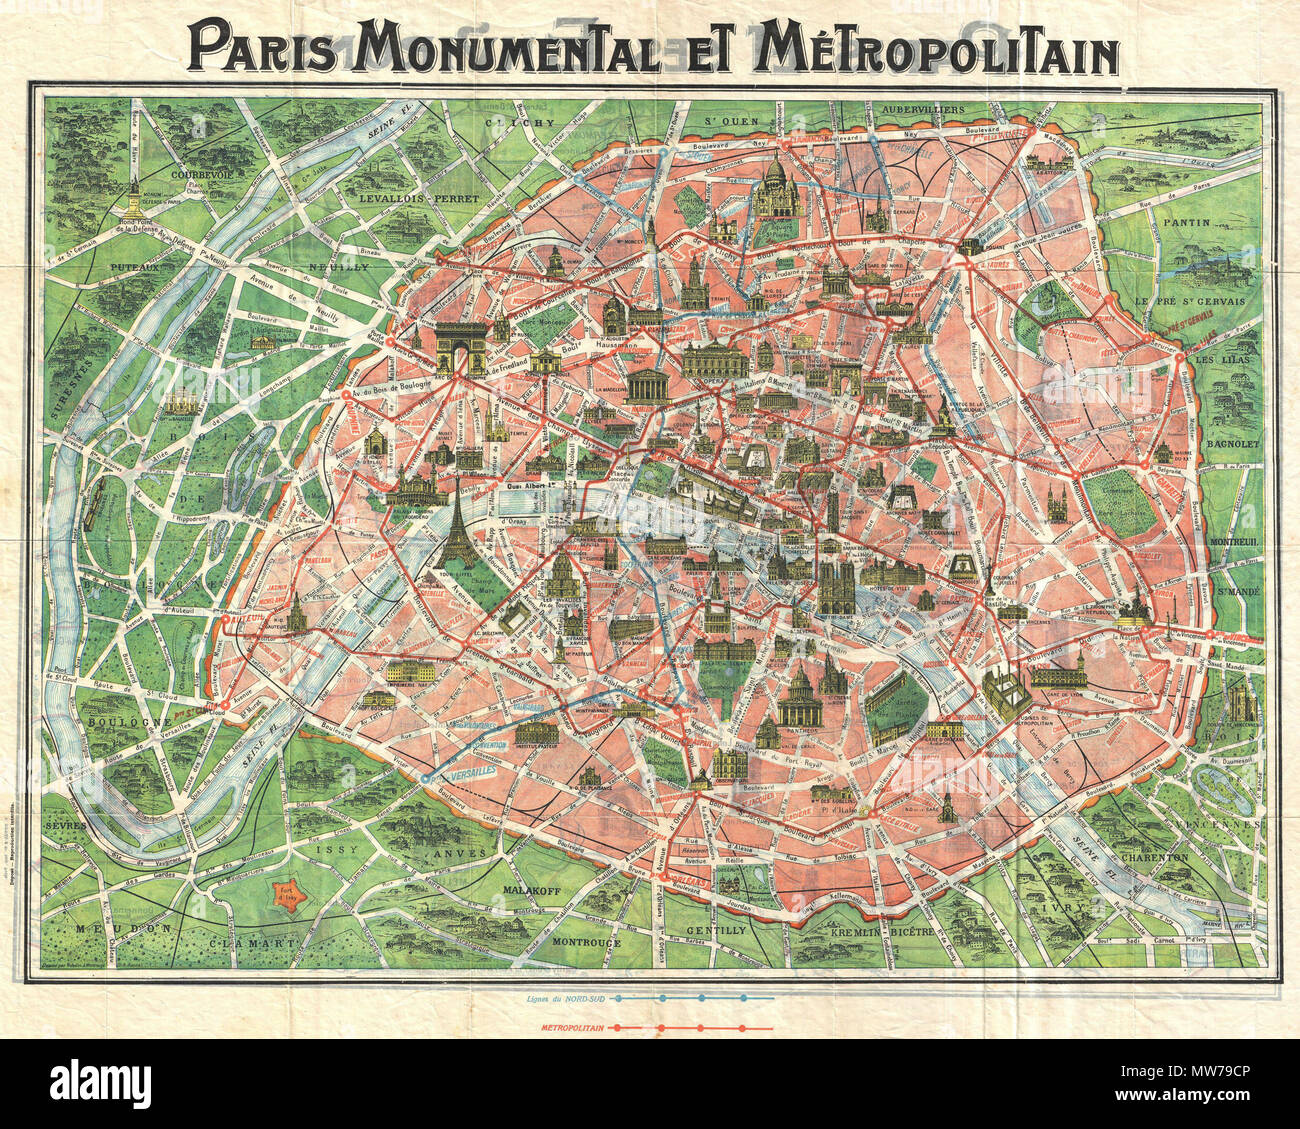 english this c 1920 map of paris france is one of the most desirable of the paris monumental series designed with the tourist in mind